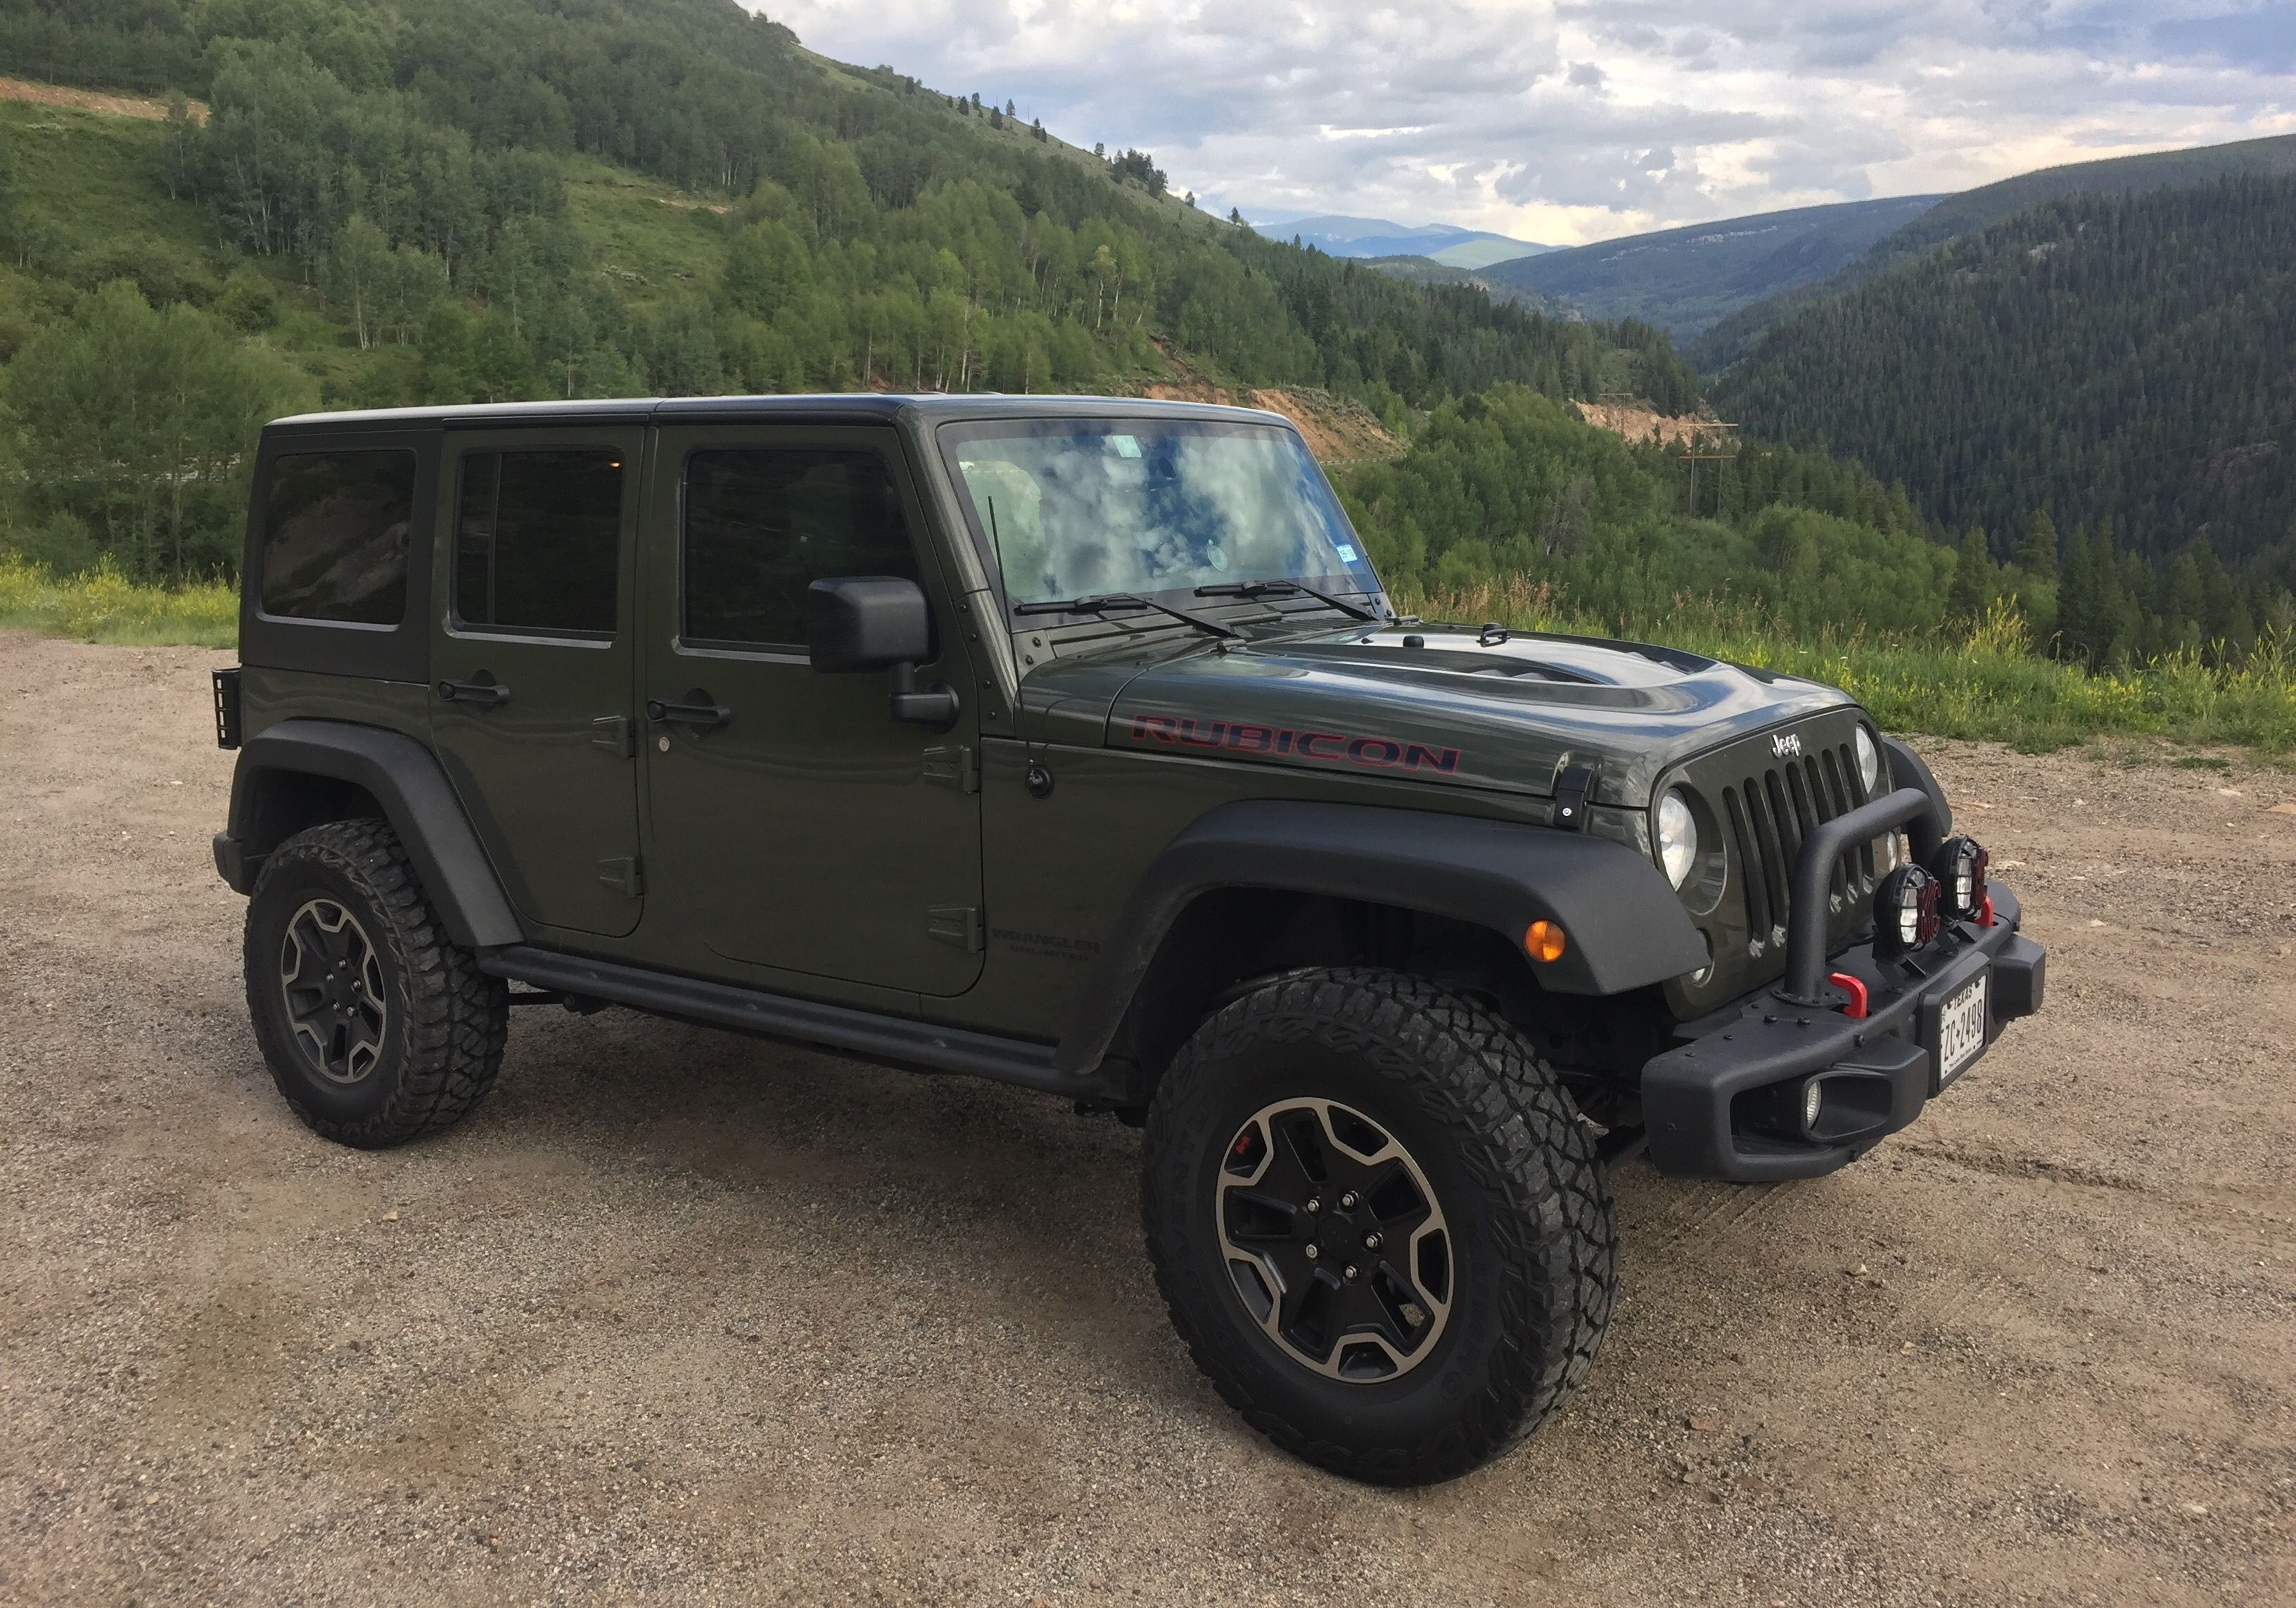 285/70/17 KM2's next to my stock 255/75/17 | Jeeping ...